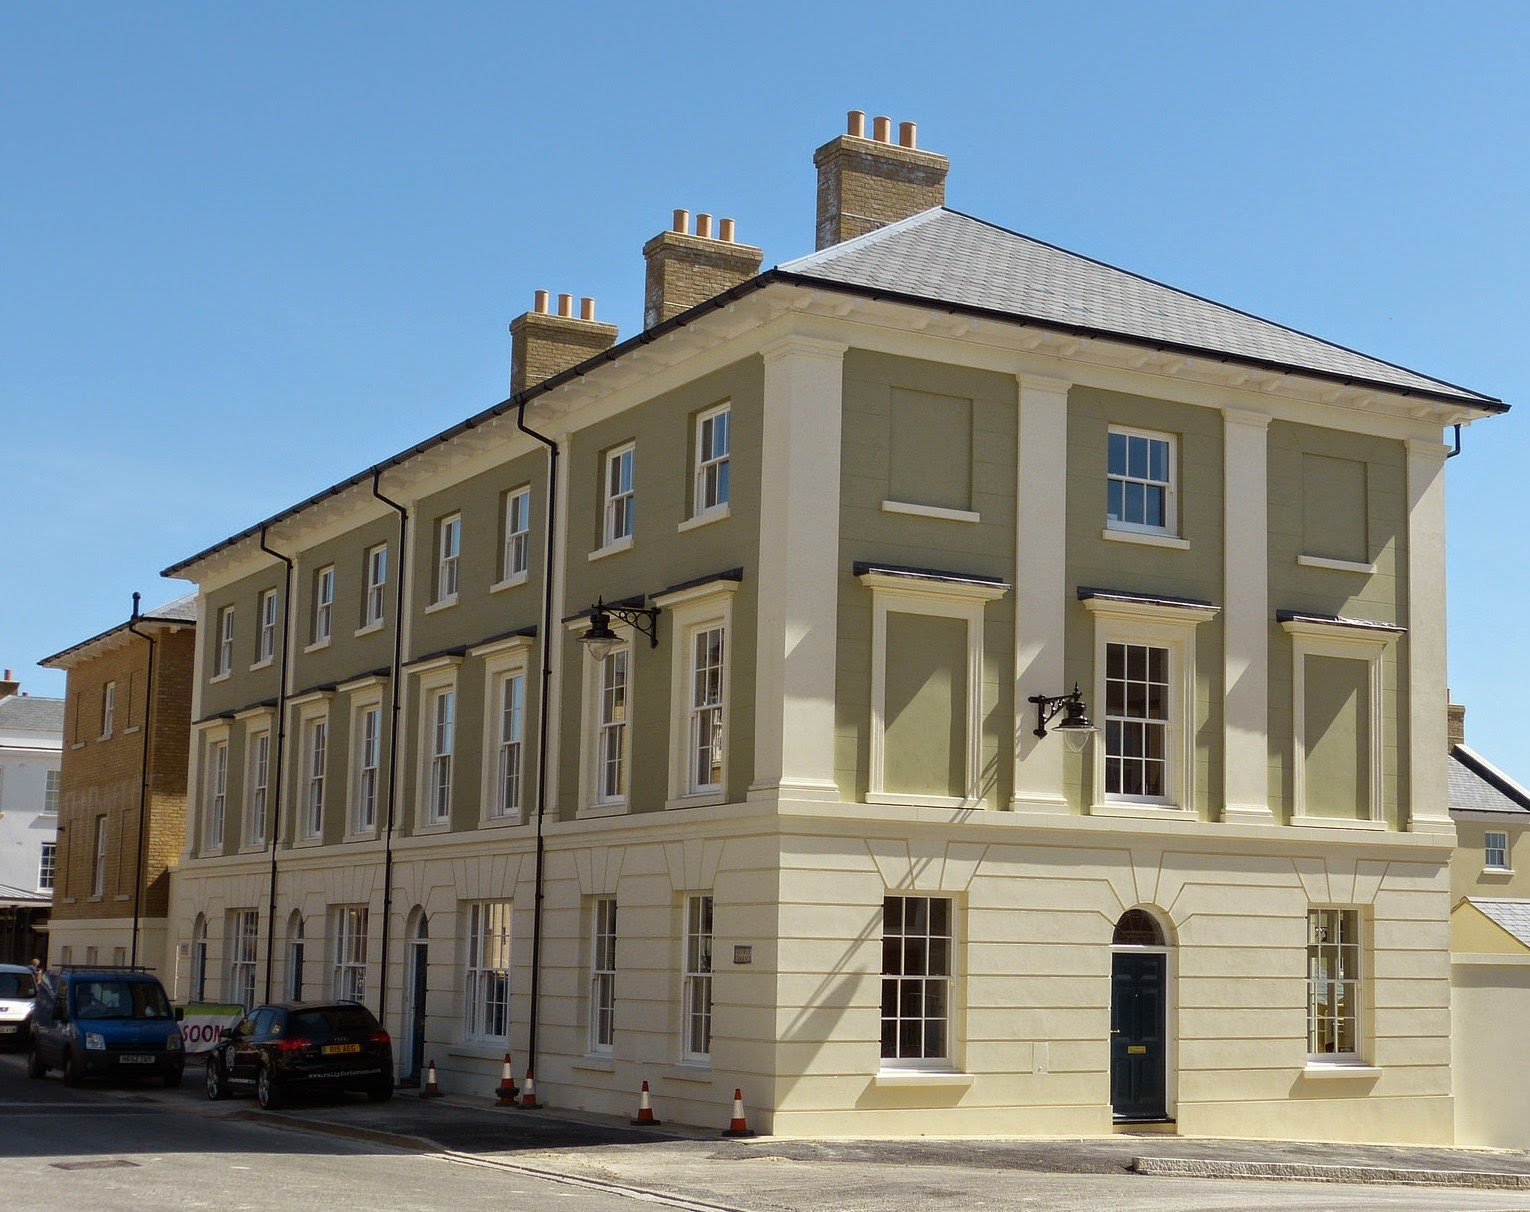 Regency History: Georgian architecture - a Regency History guide